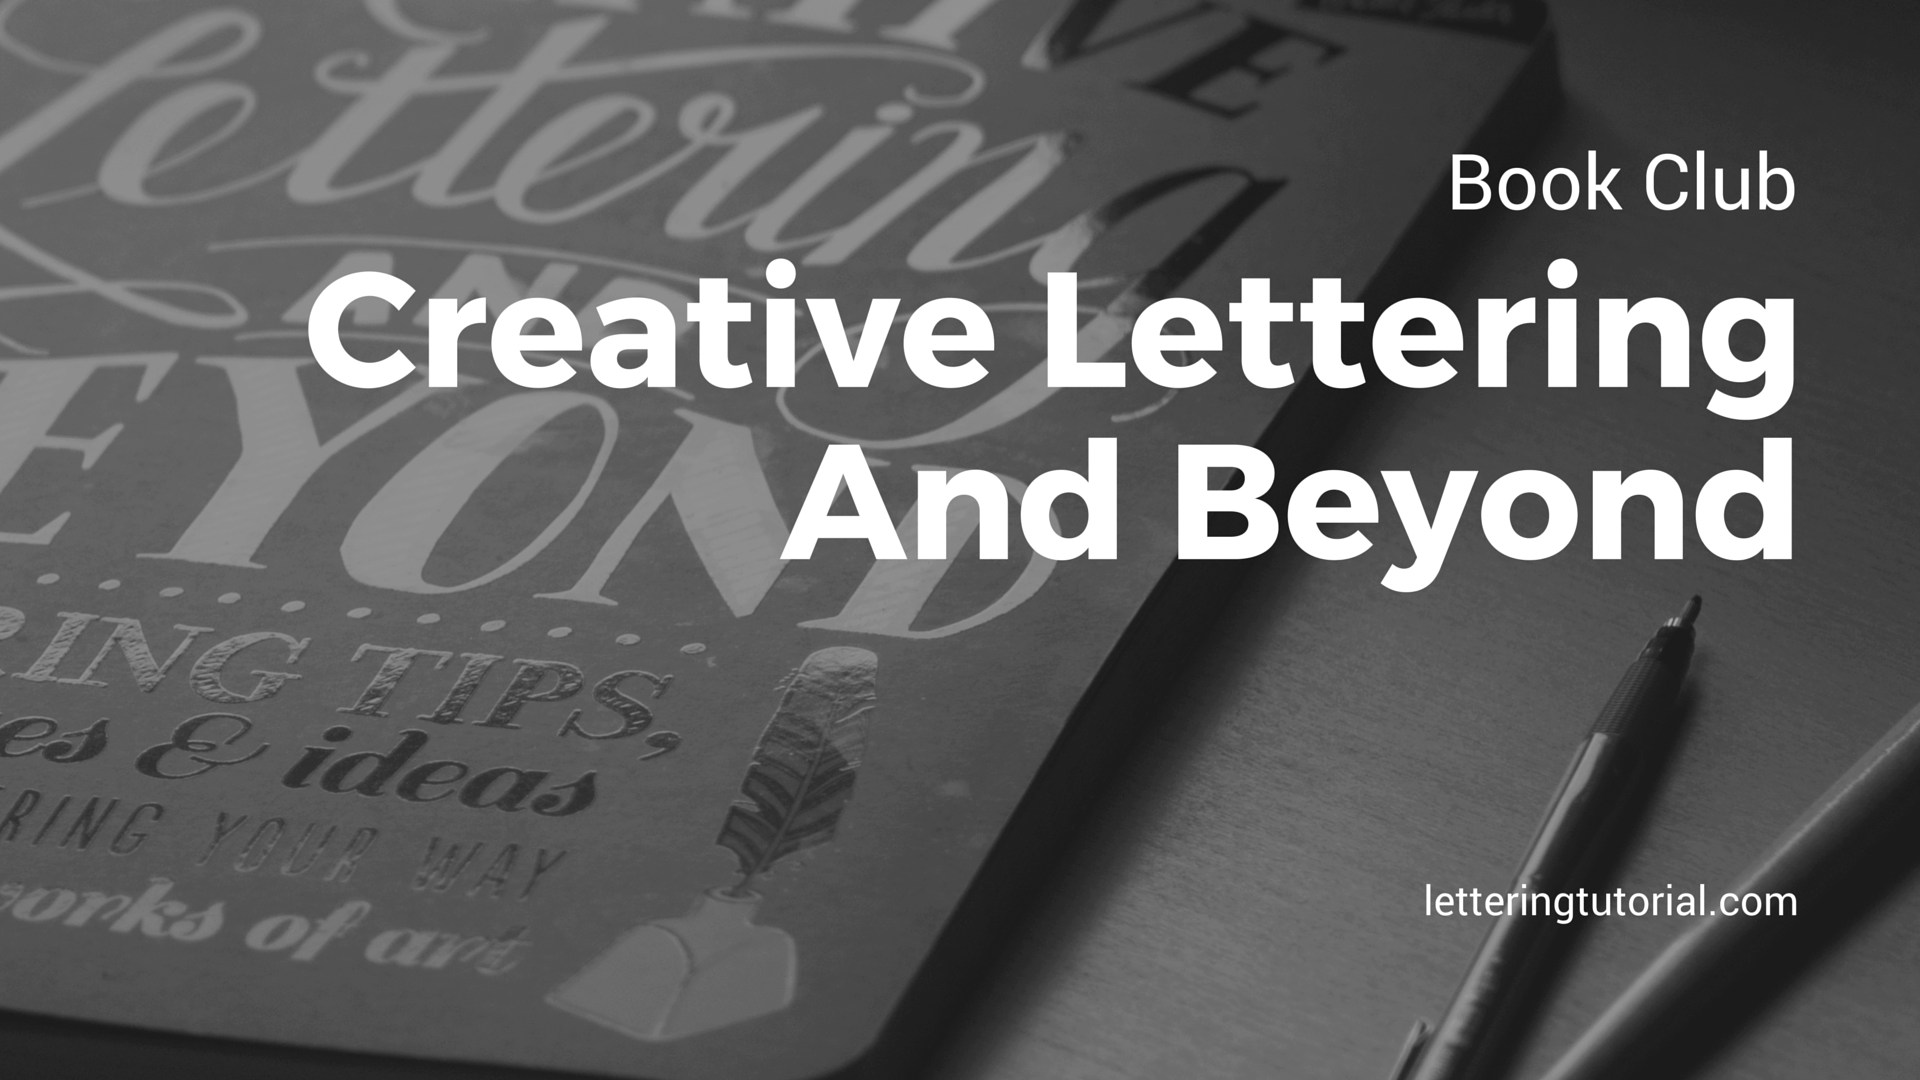 Book Club Creative Lettering And Beyond - Lettering Tutorial